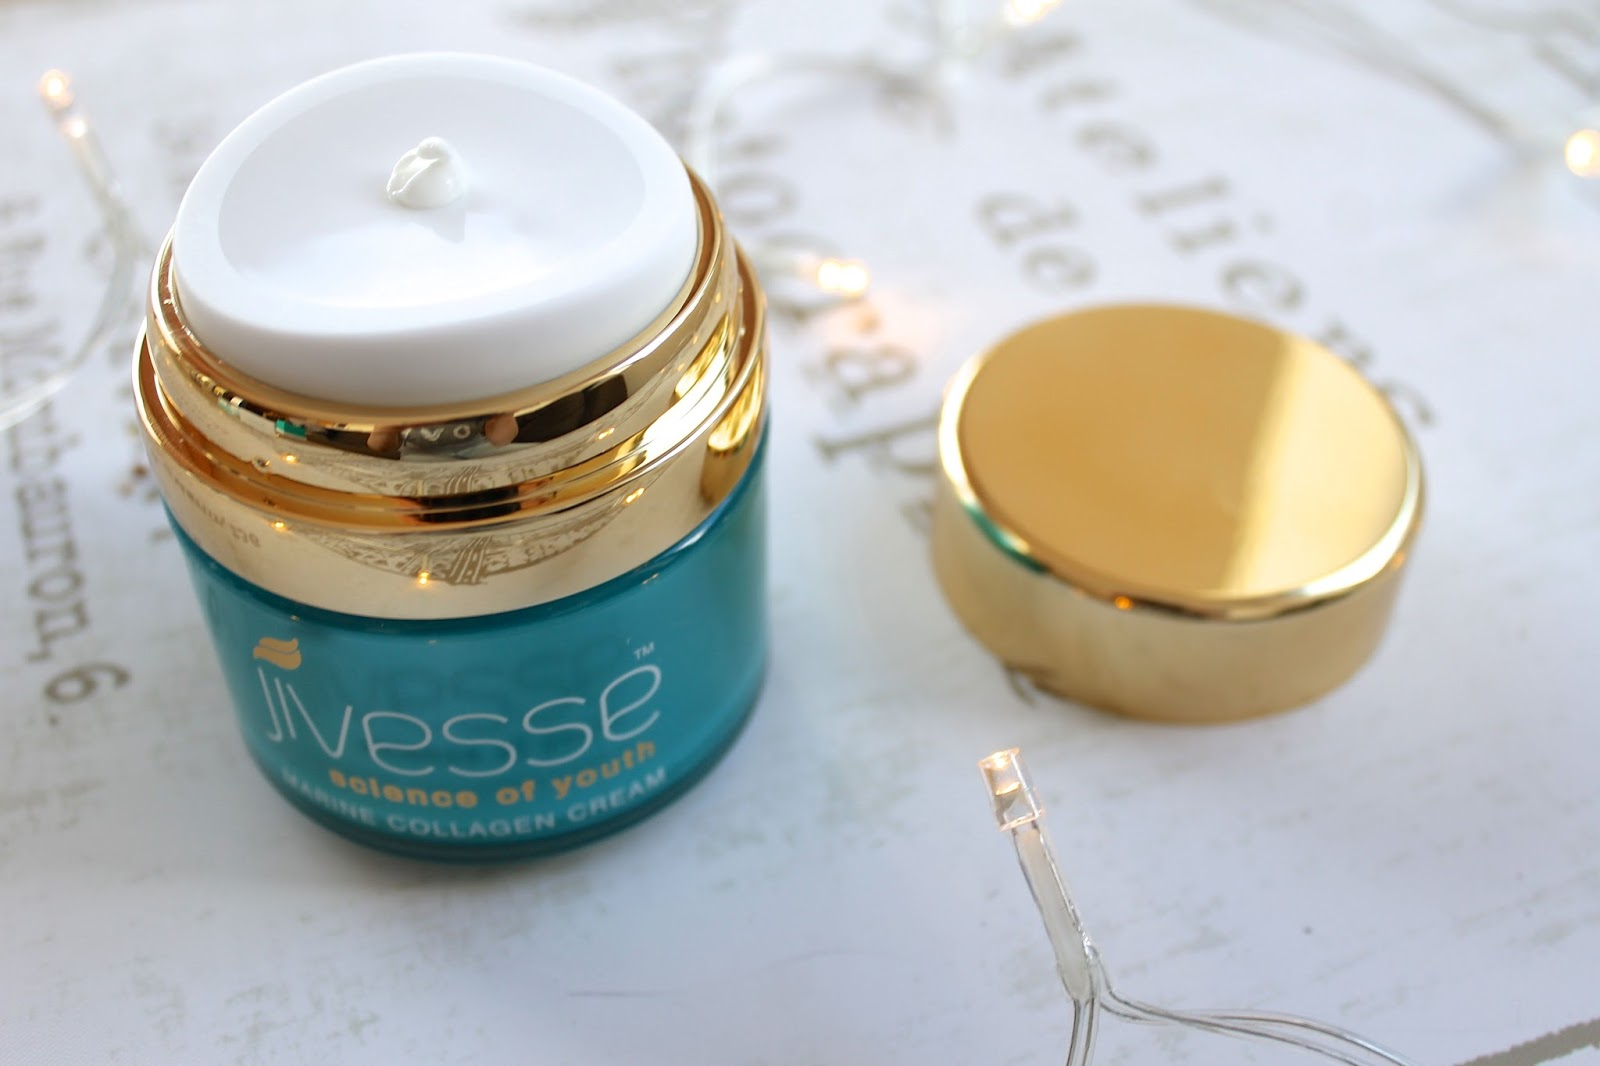 Jivesse marine collagen cream blog review